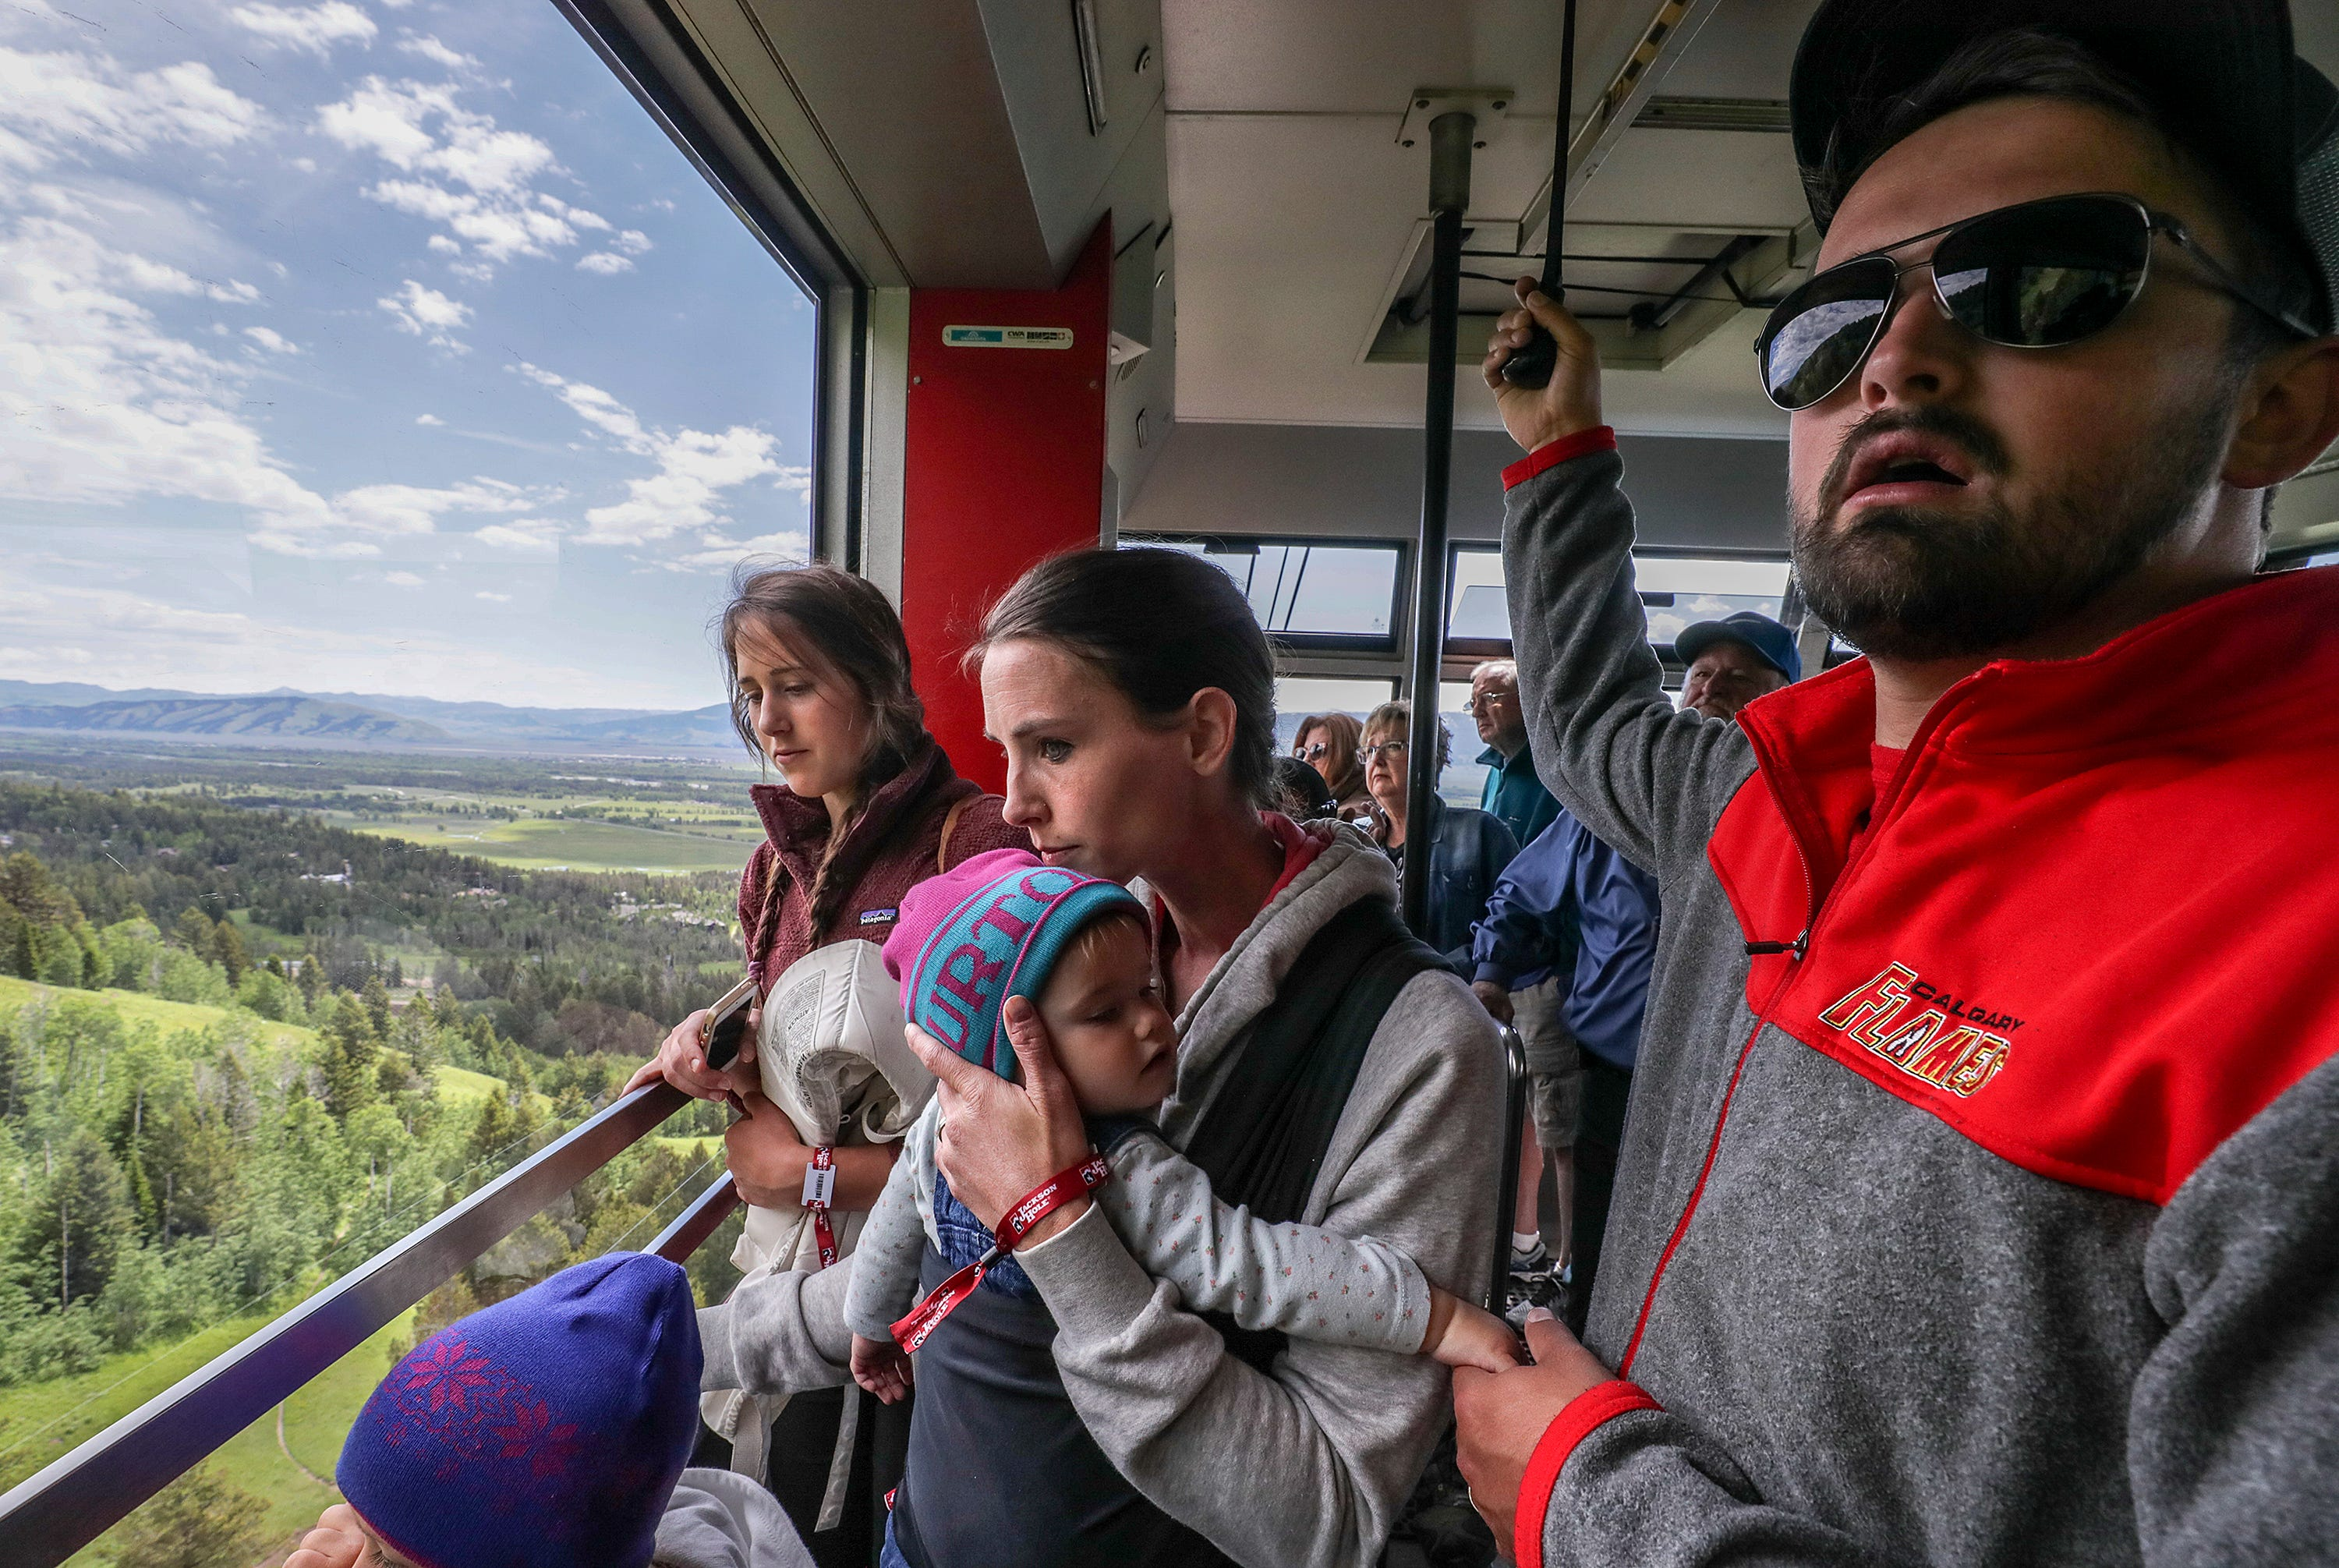 Rachael Denhollander and her husband, Jacob, travel in a tram at Jackson Hole, Wyoming. June 2019